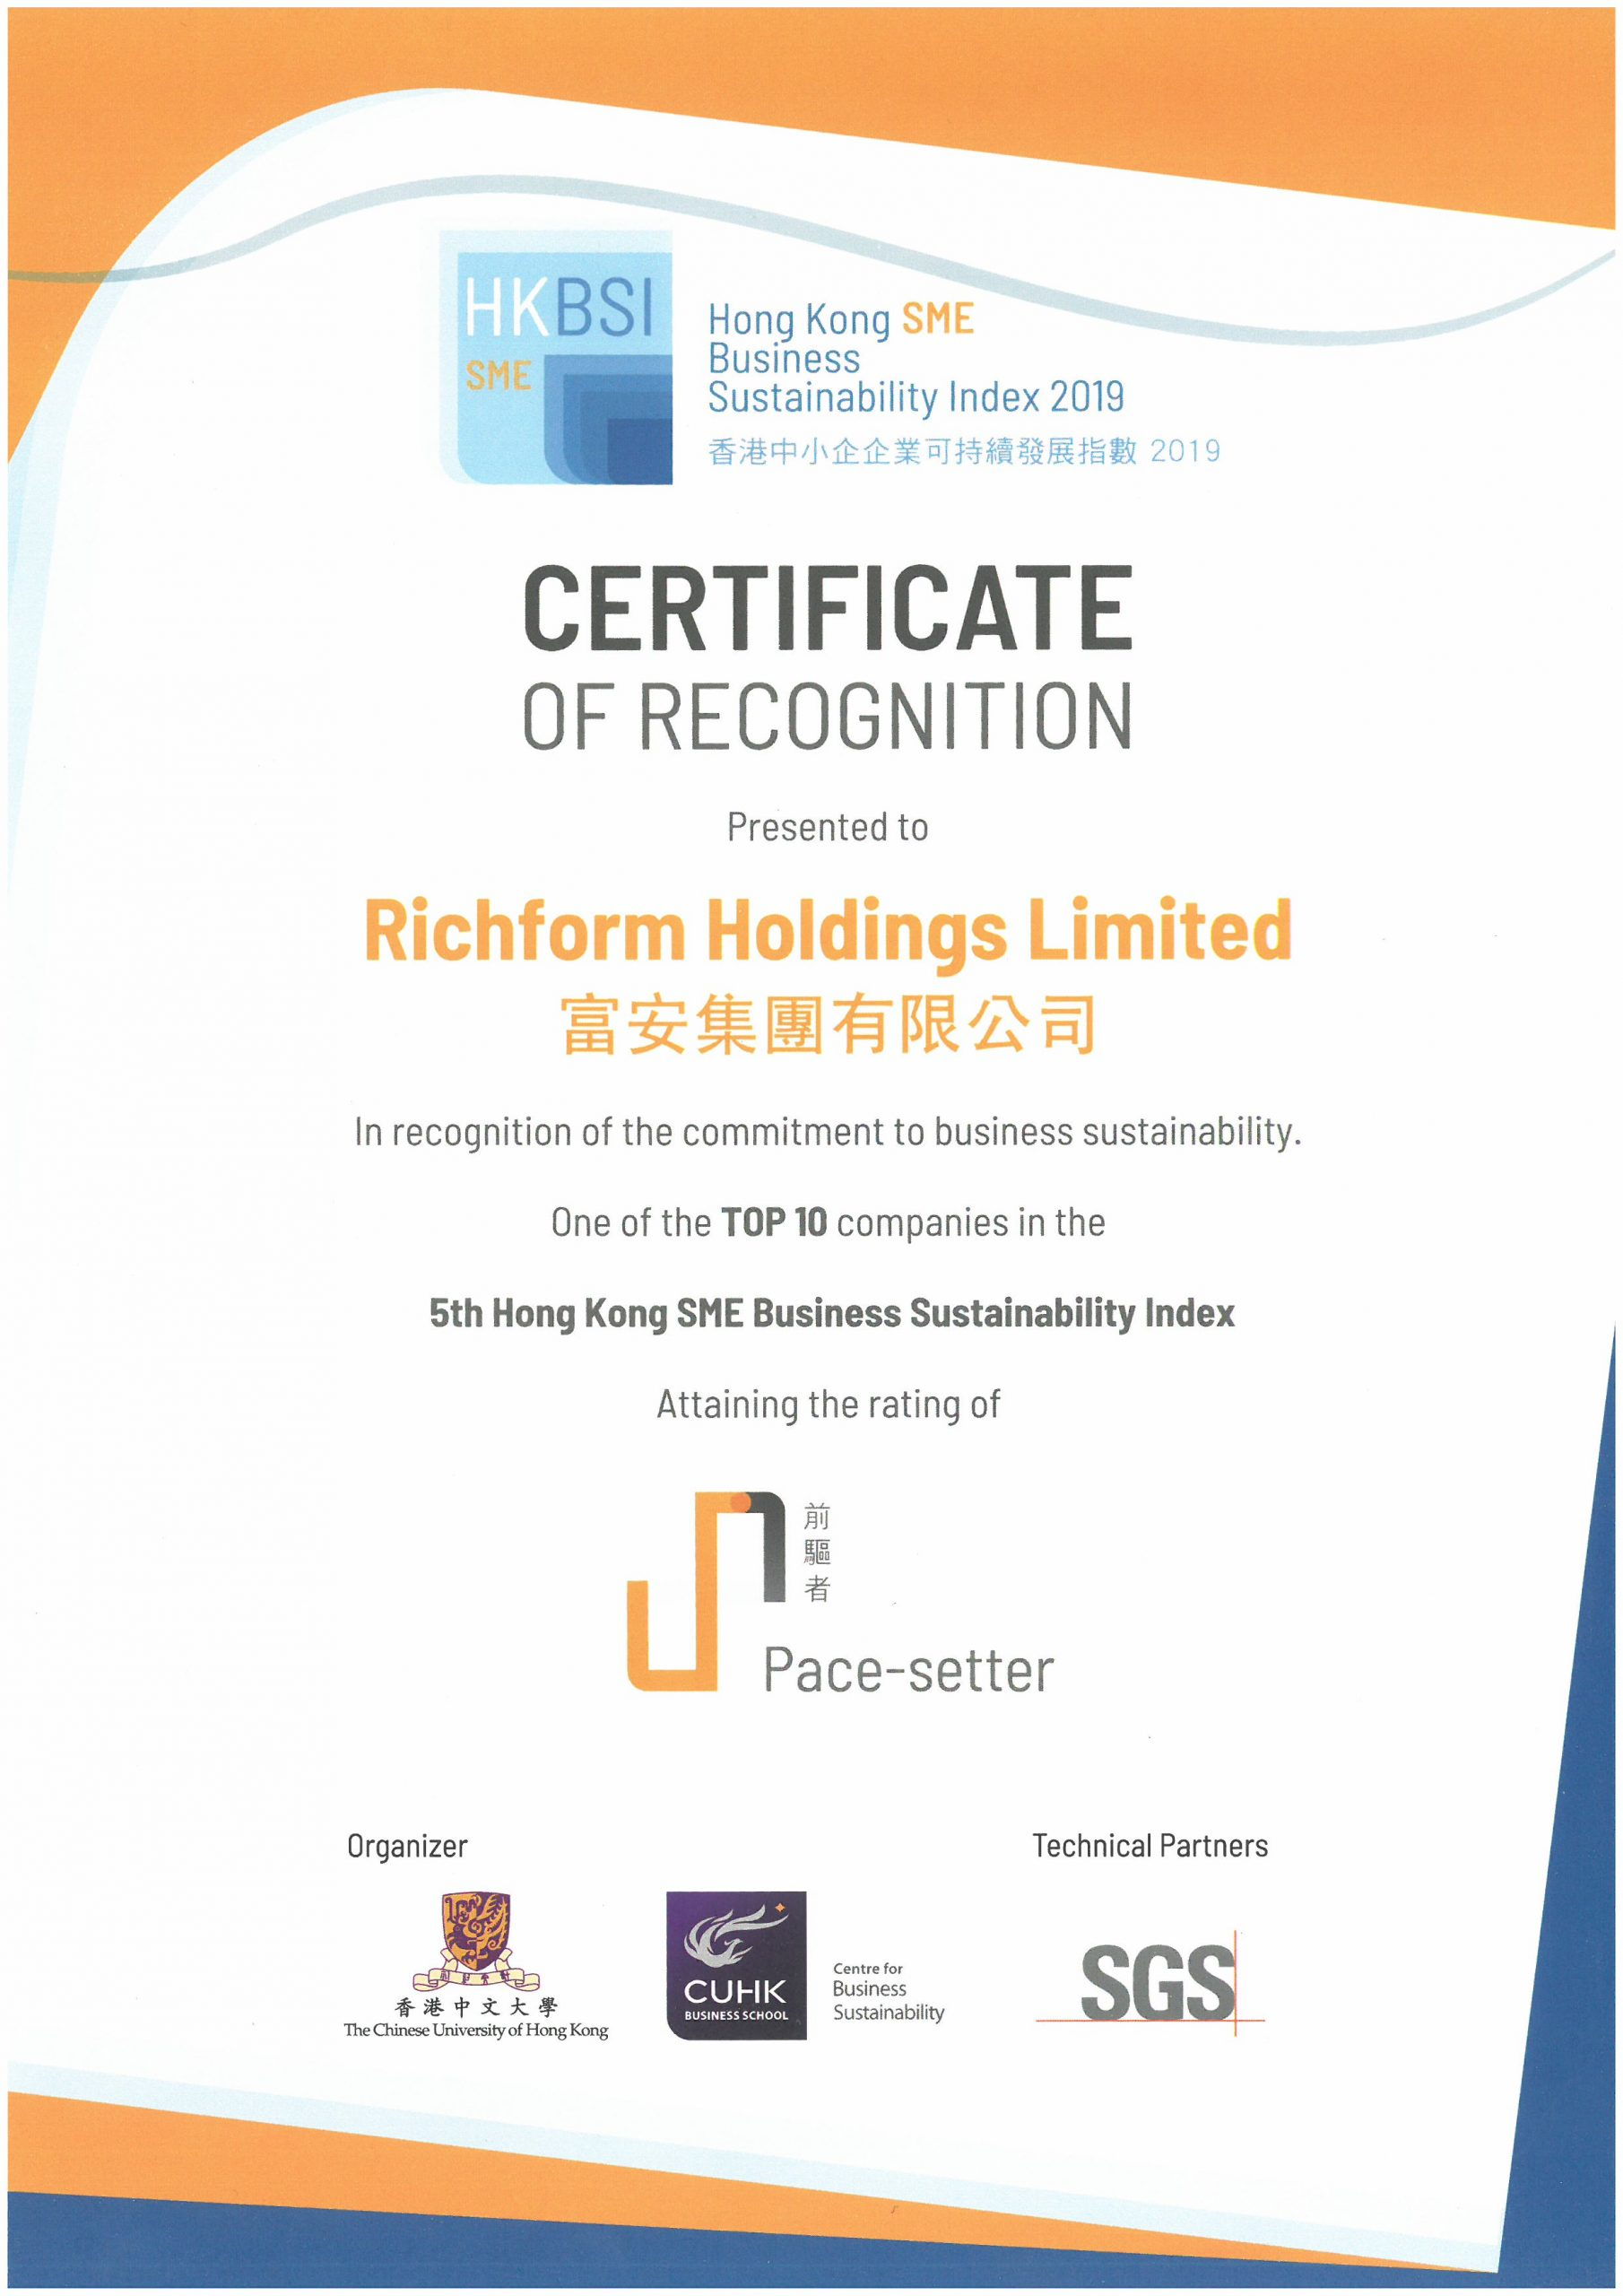 Hong Kong SME Business Sustainability Index 2019